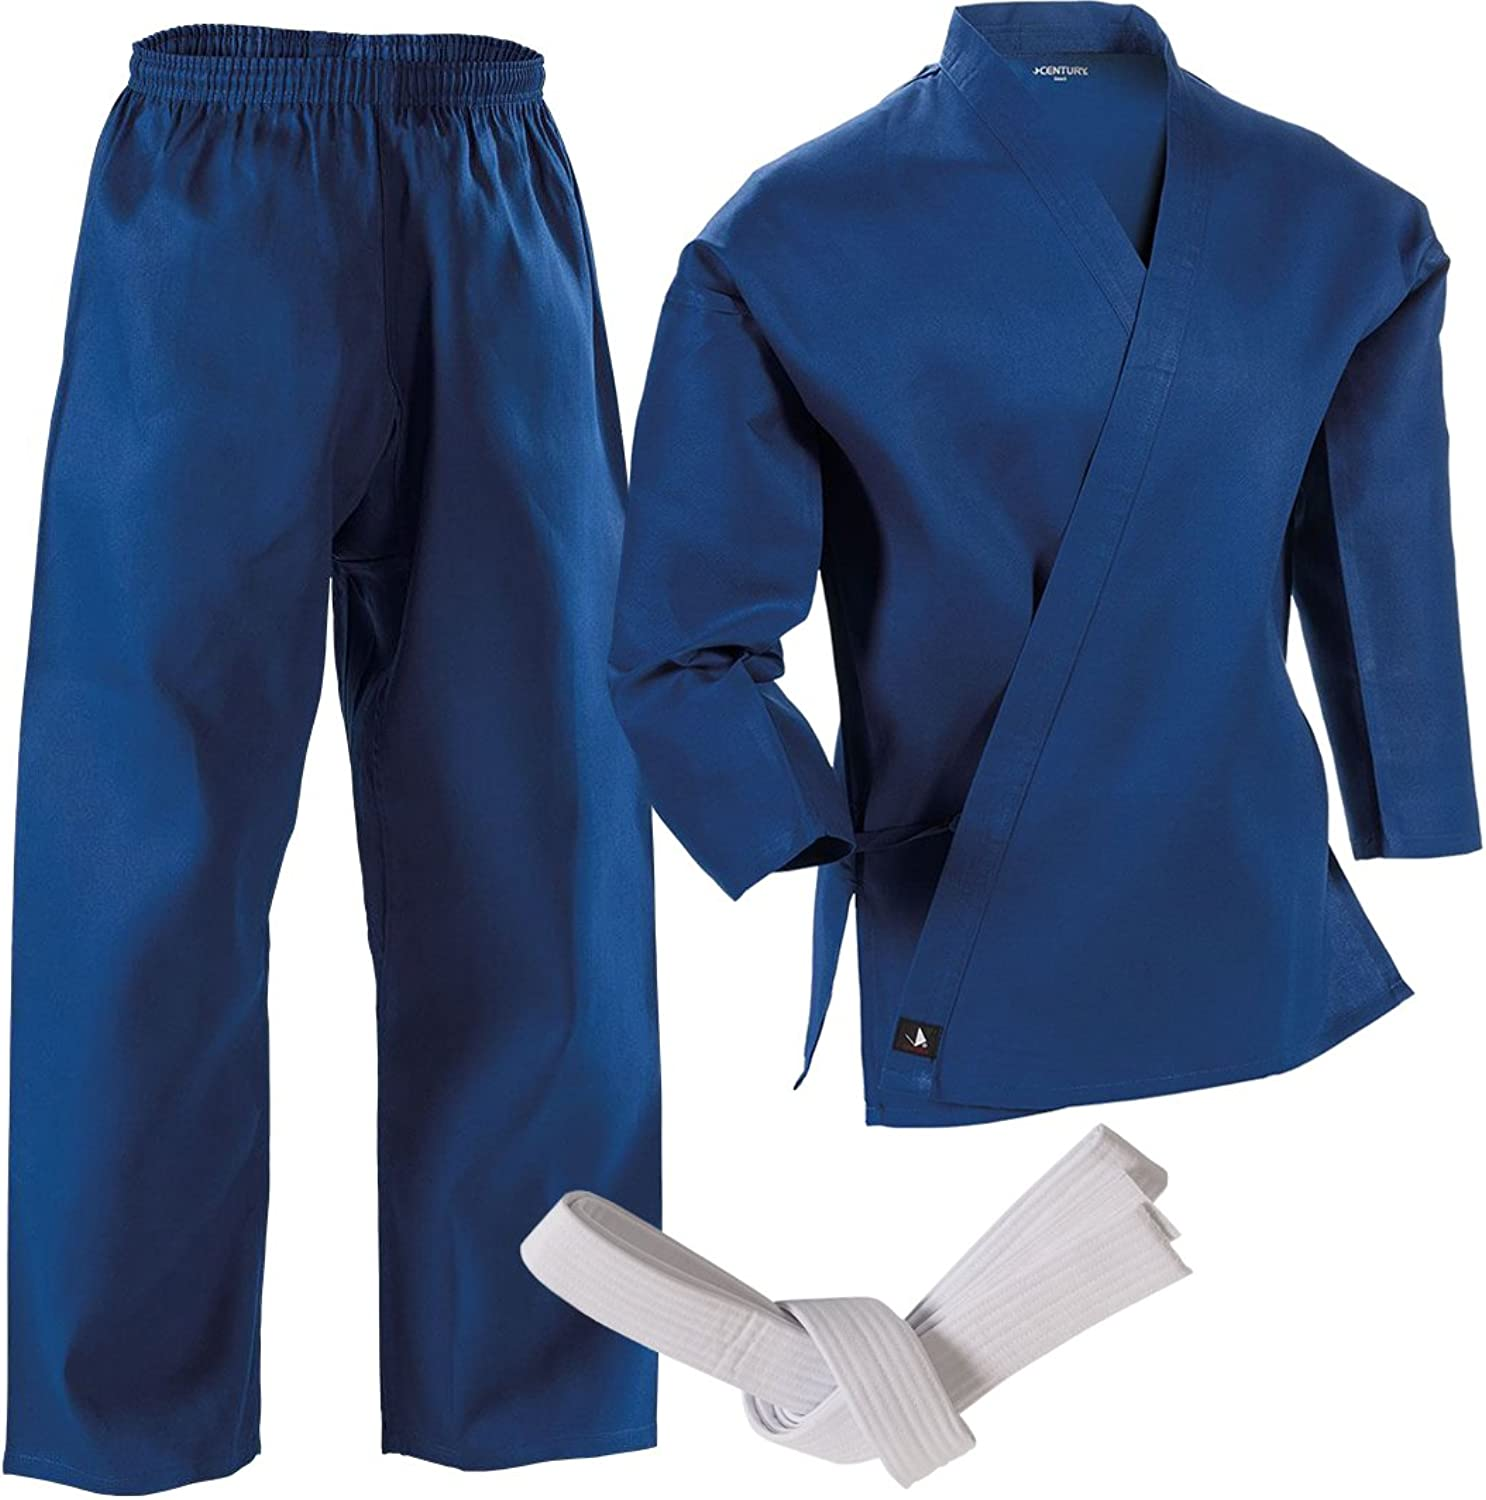 (5Adult Large, blueee)  Century Martial Arts Middleweight Student Uniform with Elastic Pant